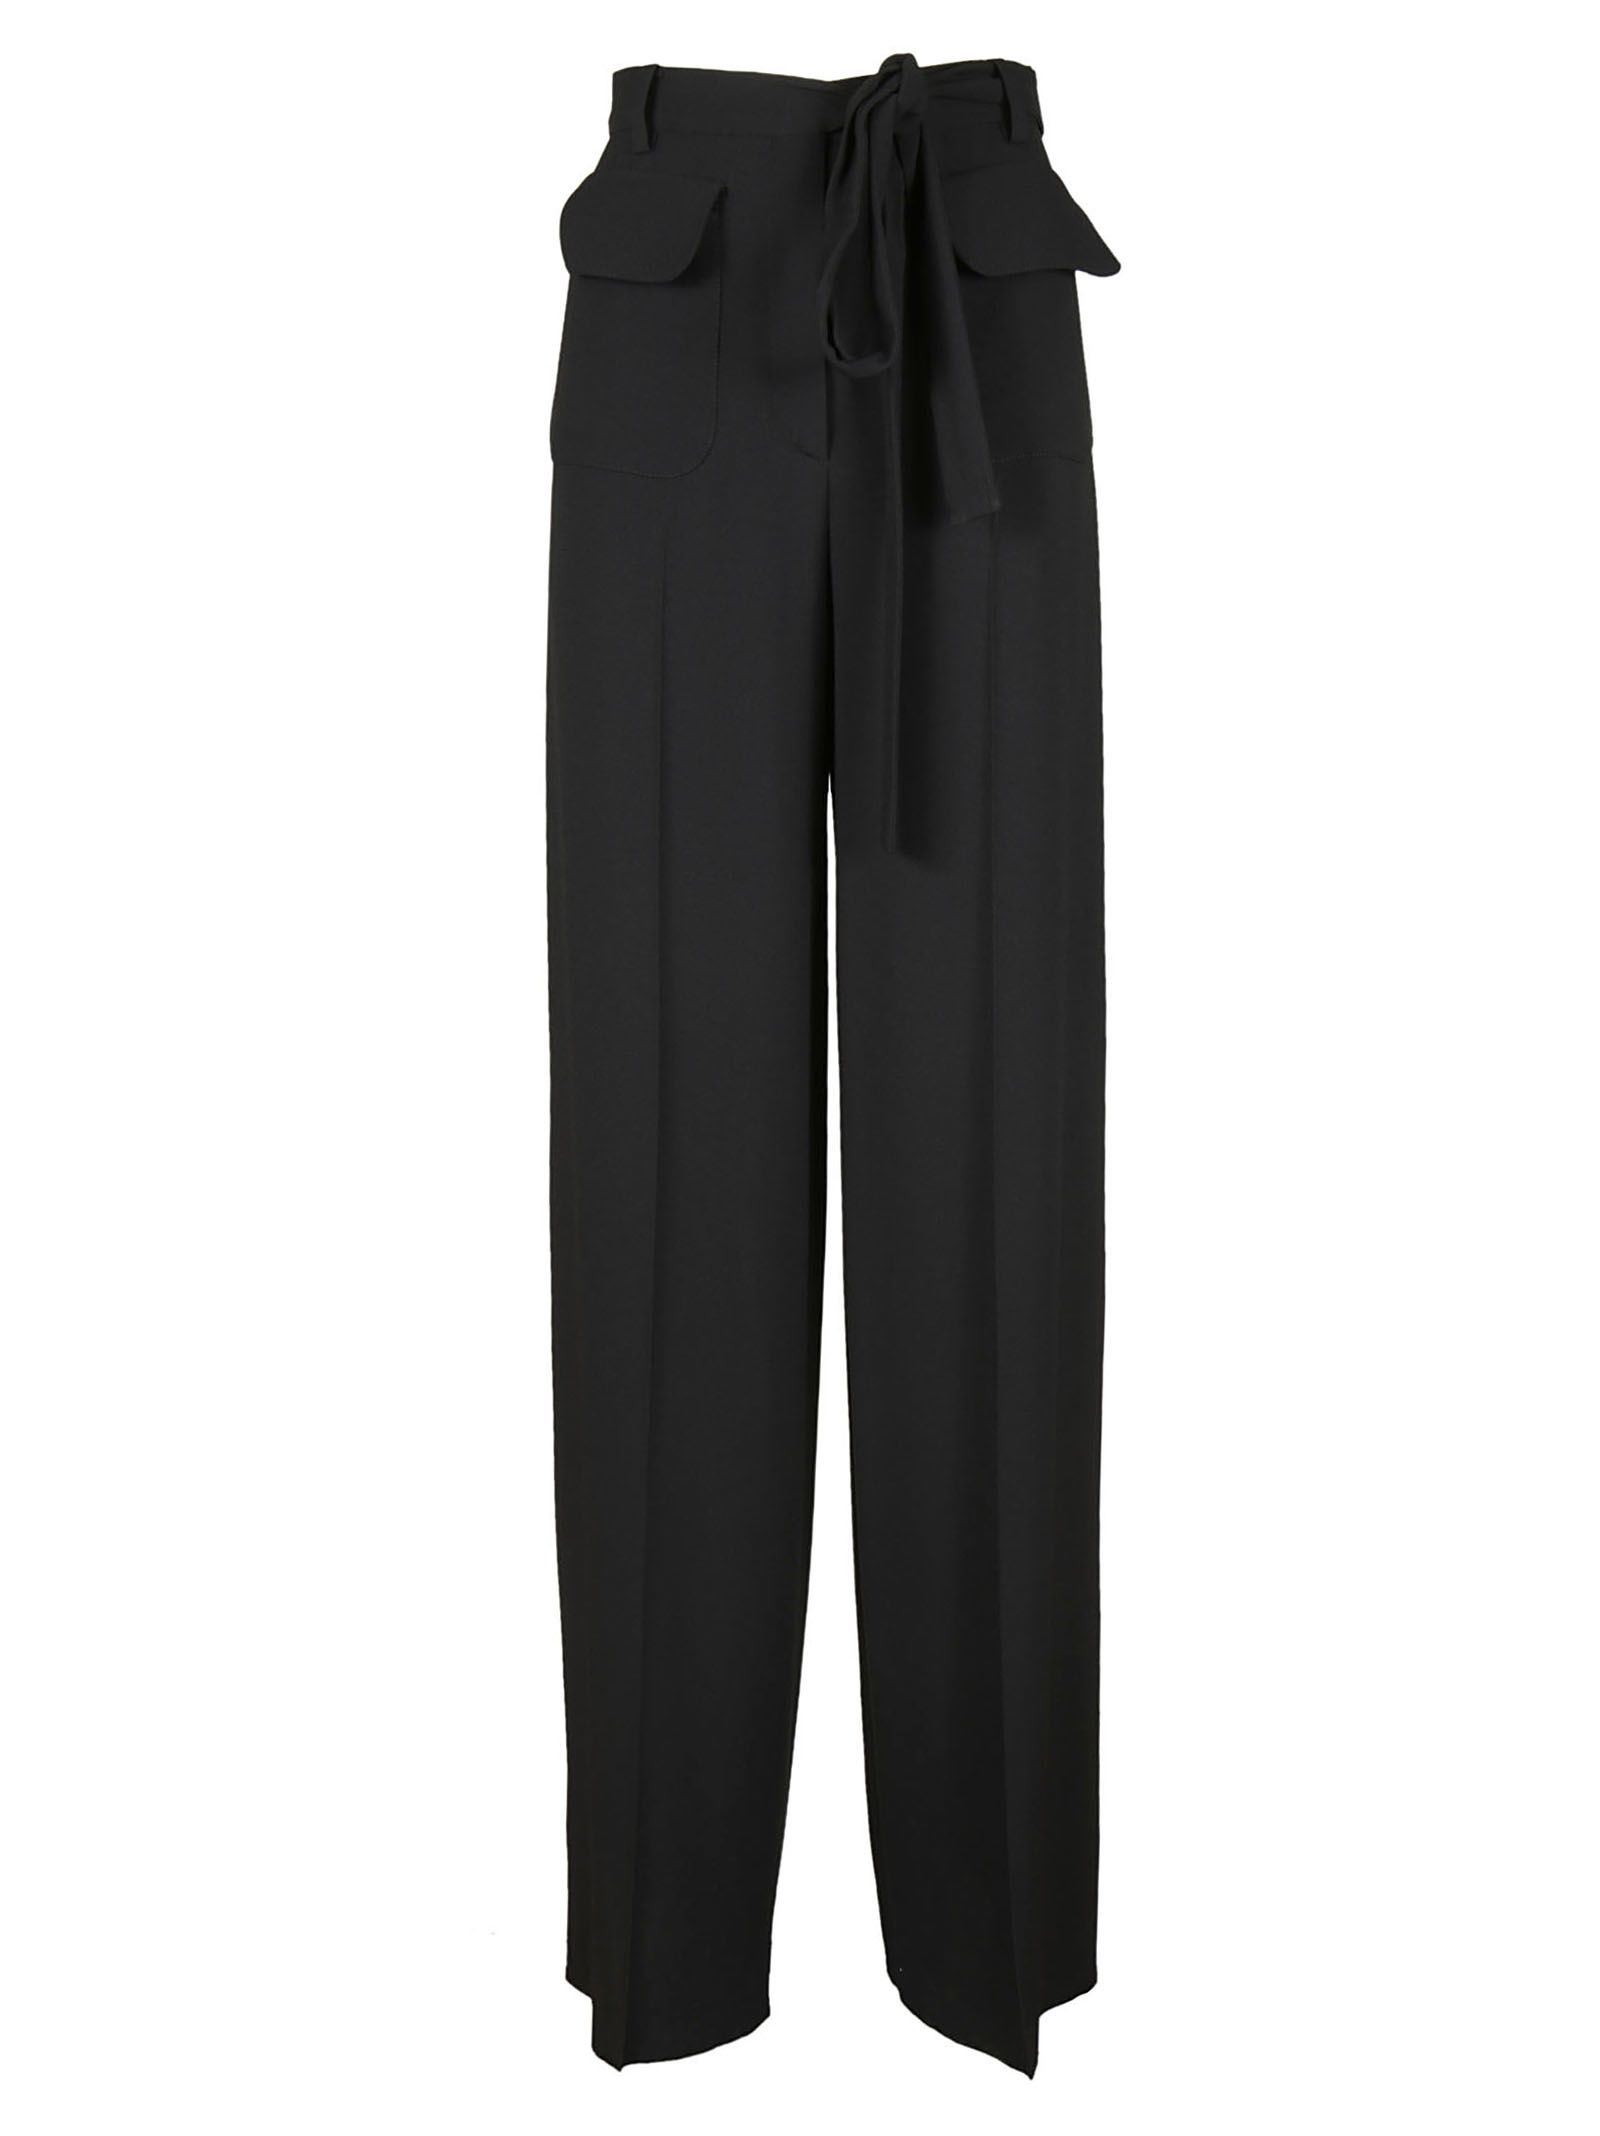 Valentino Belted Bow Trousers